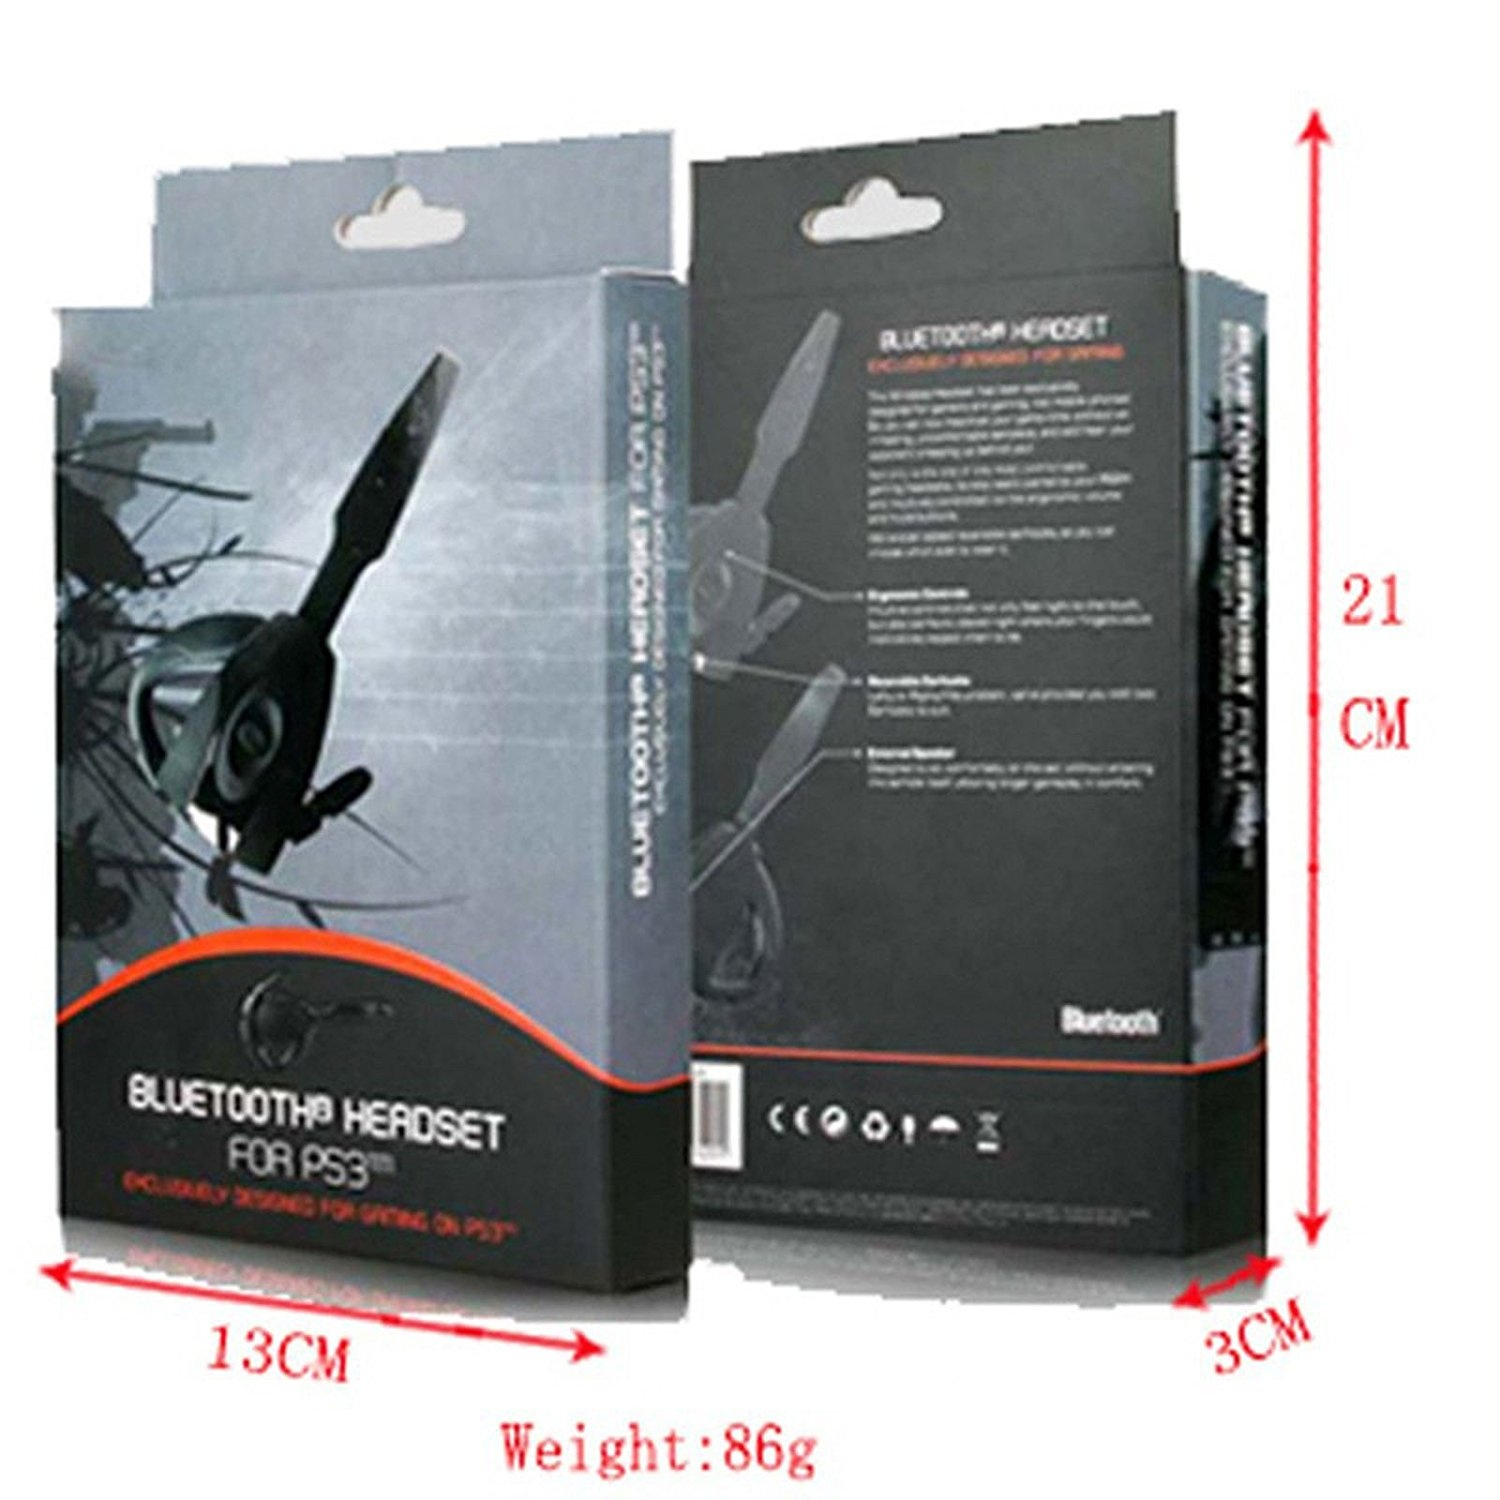 Ps3 Headset Electronics: Buy Online from Fishpond.co.nz